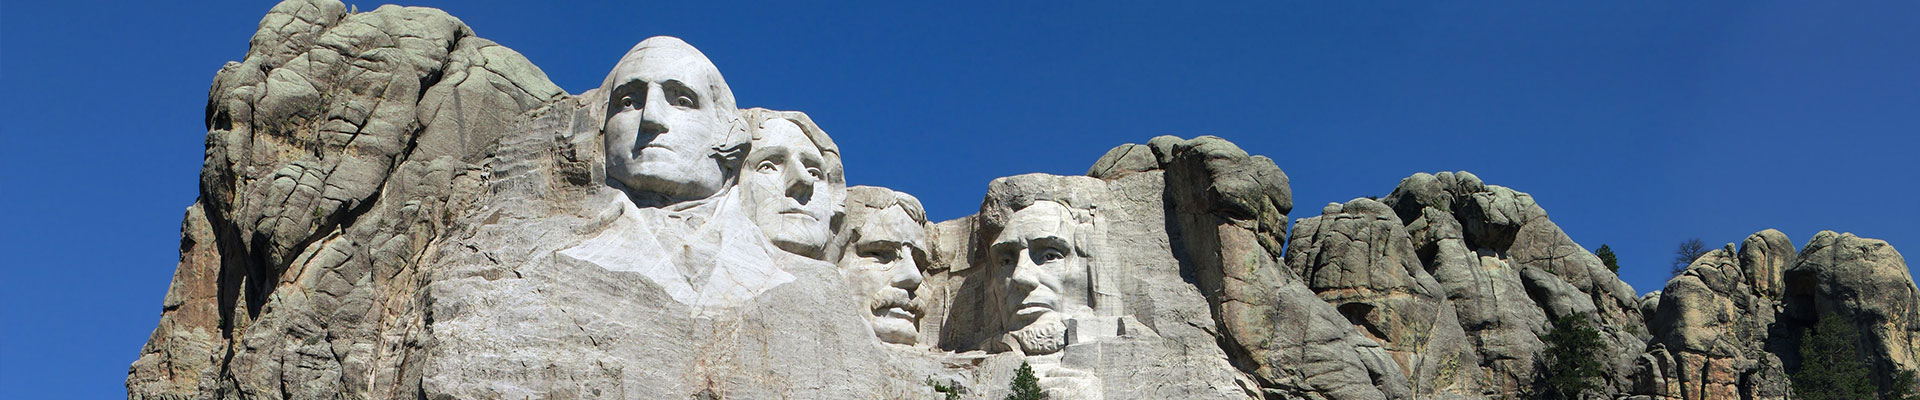 Fantasy RV Tours: 7 Day Black Hills and Badlands Rally (07UBHW-061820)